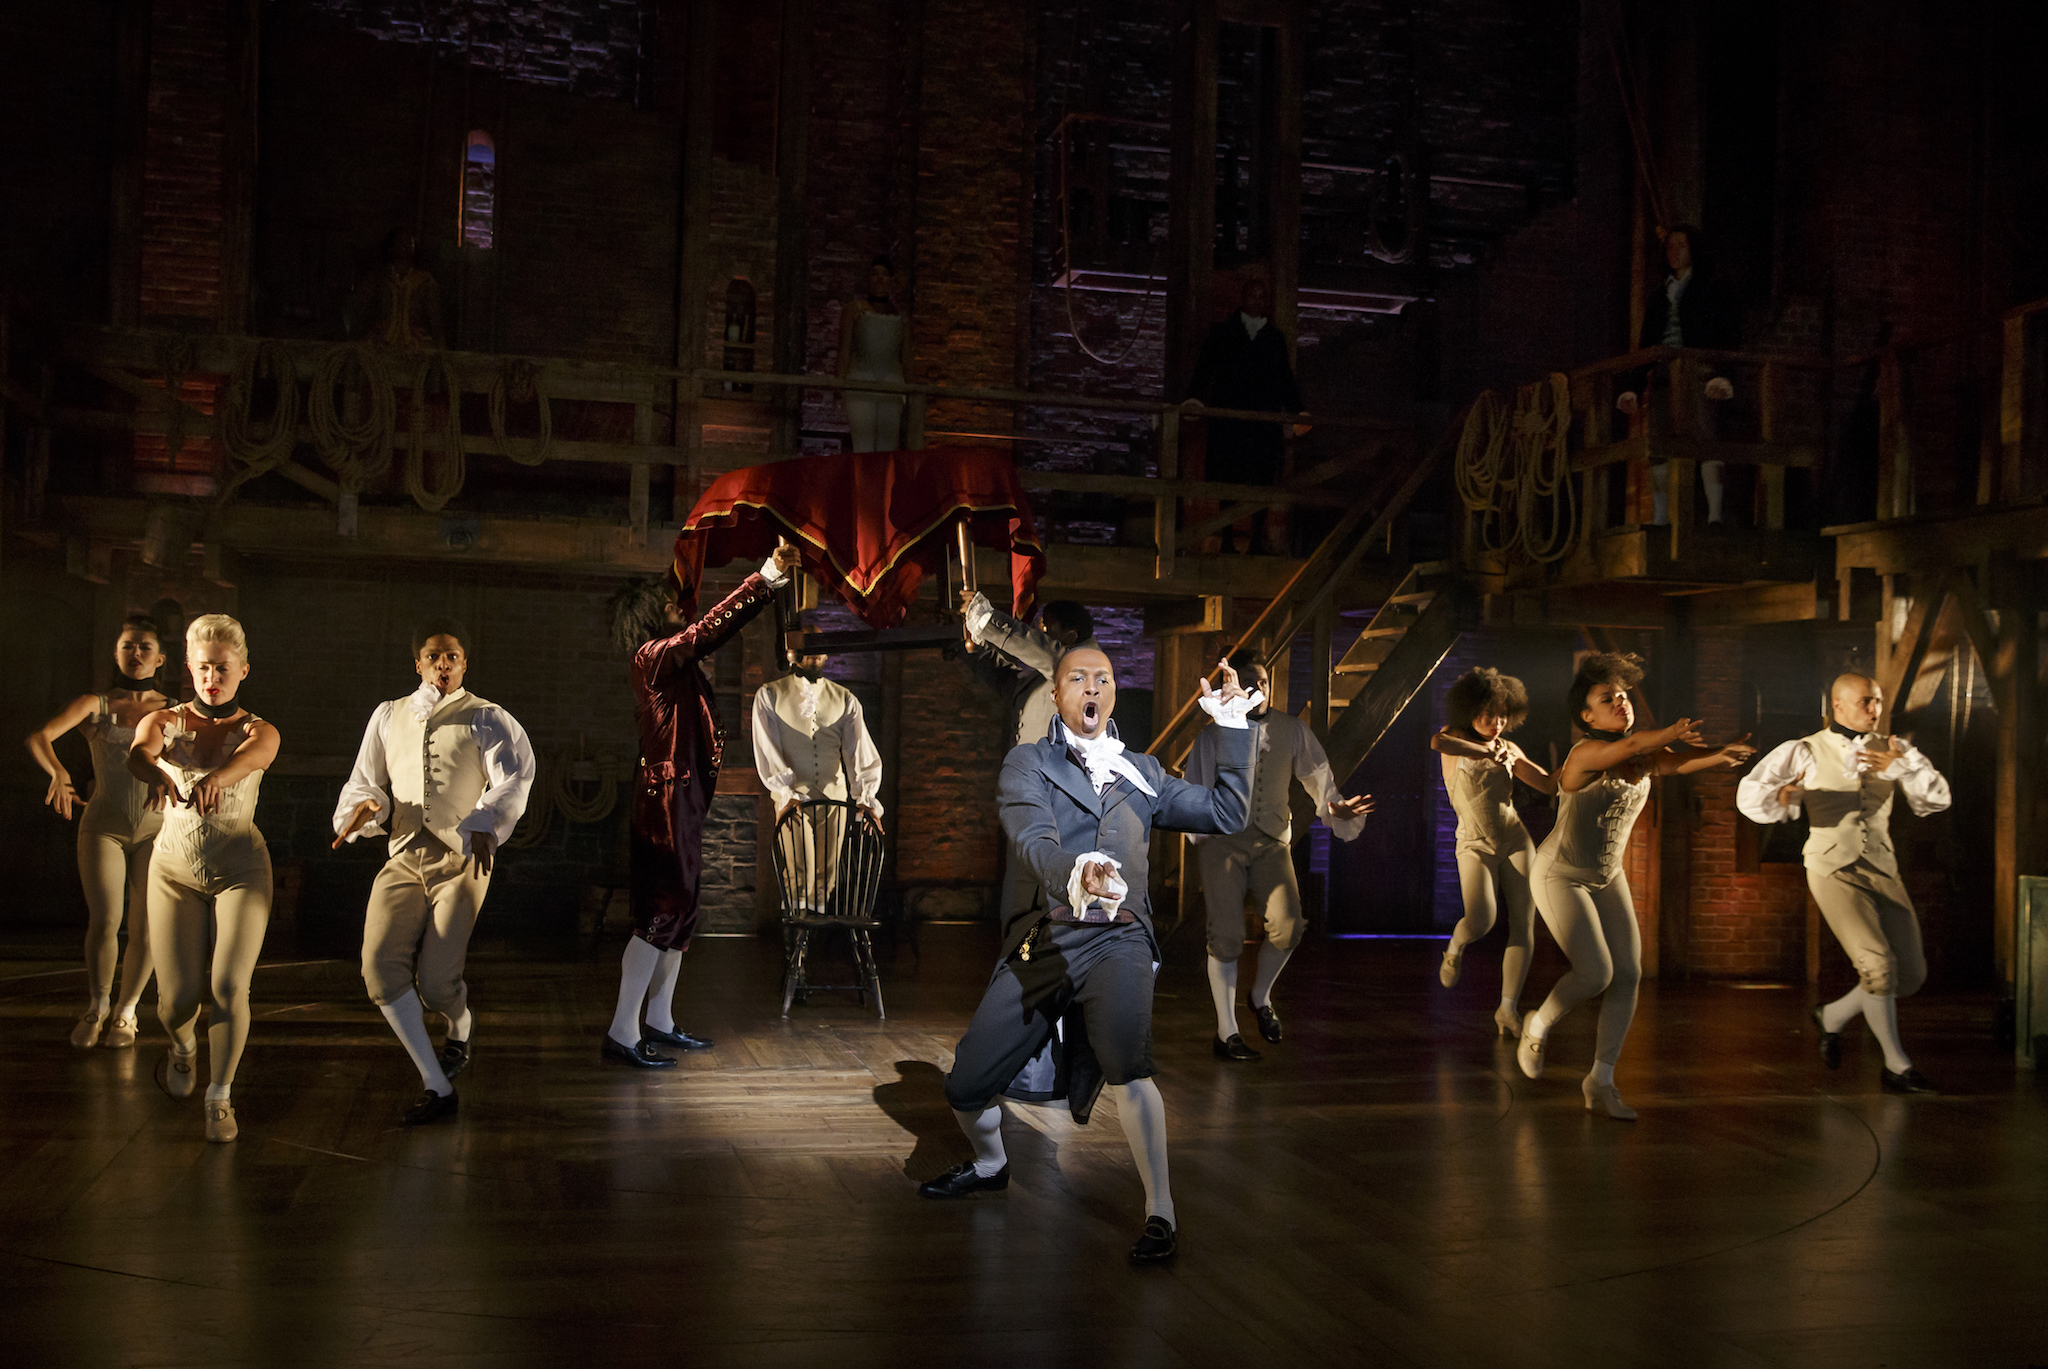 Here's how to get 'Hamilton' tickets